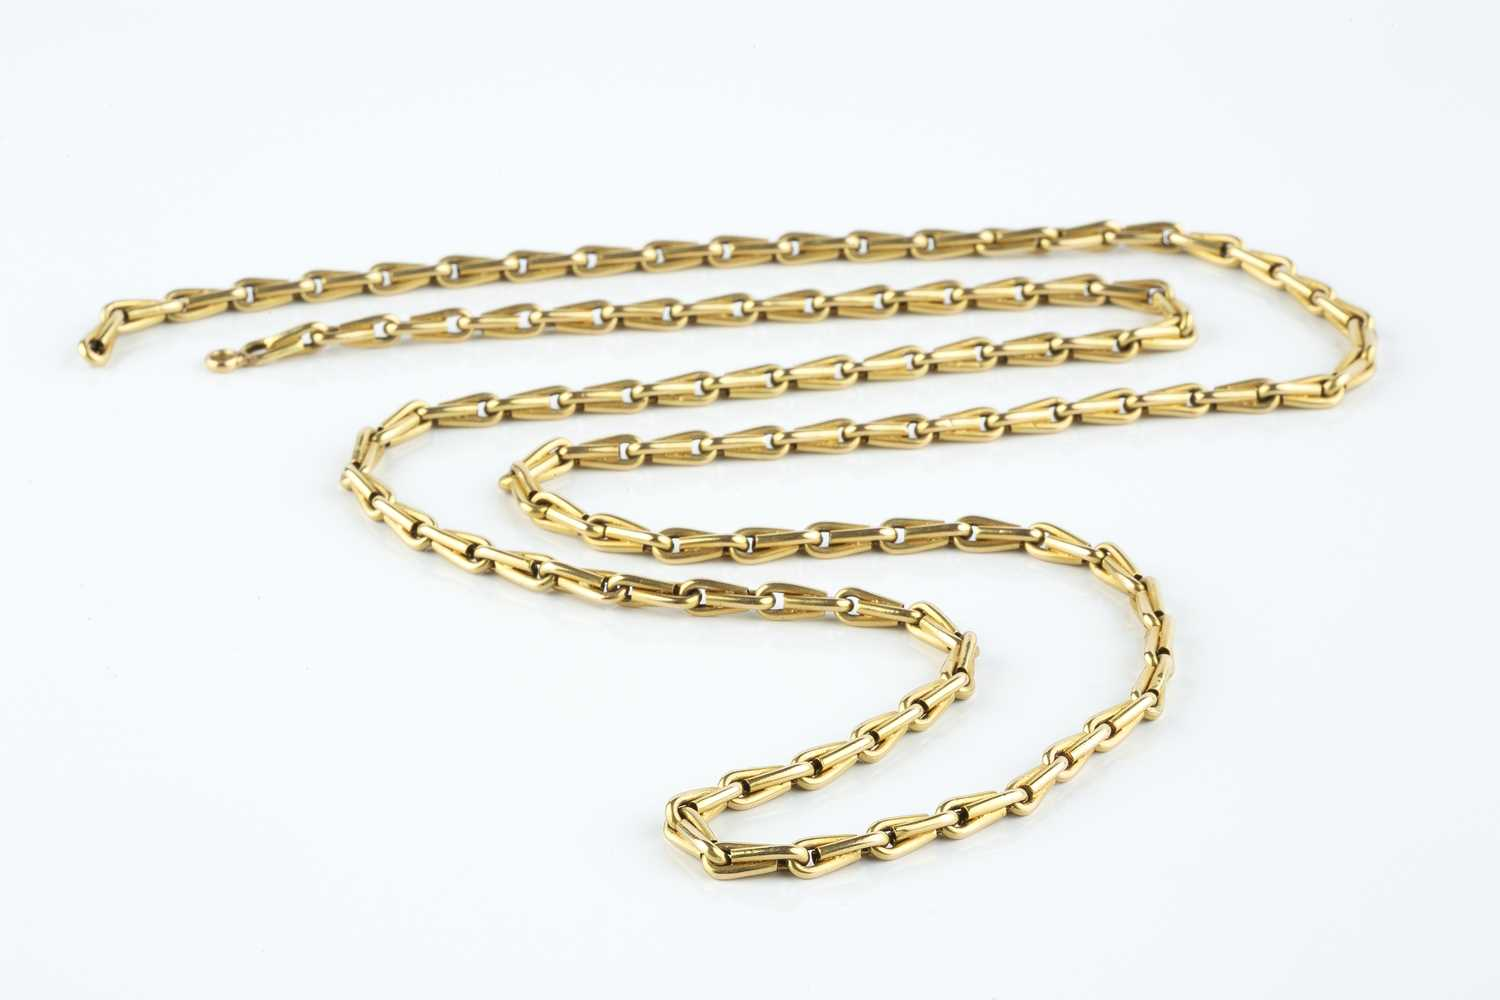 A yellow precious metal fancy-link chain, designed as a line of hollow shaped baton links, (clasp